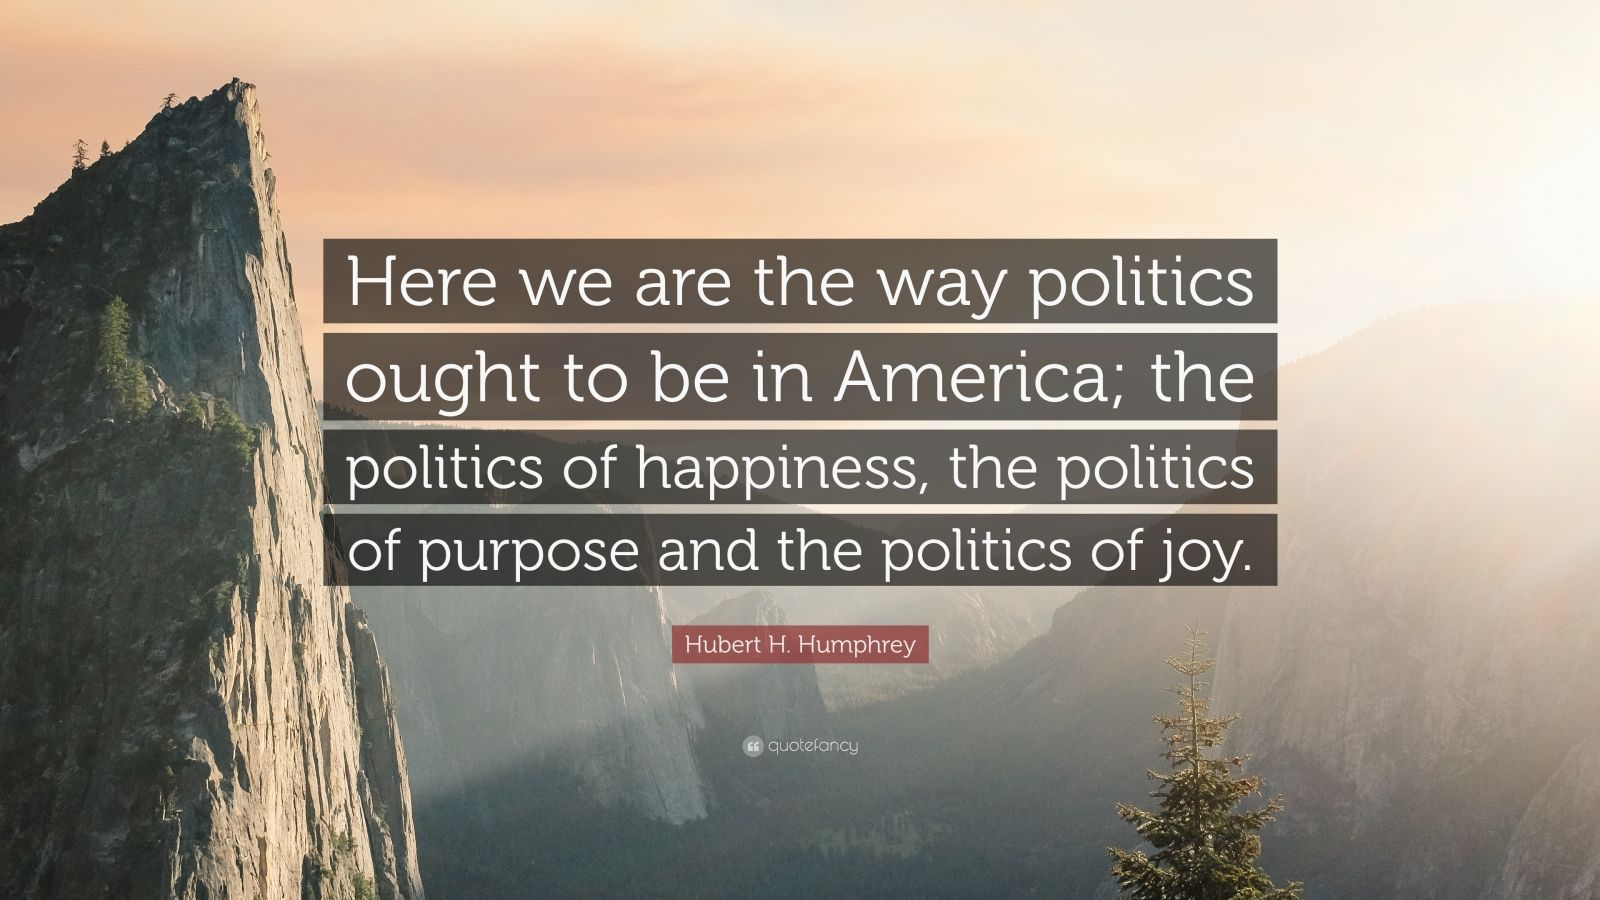 """Hubert H. Humphrey Quote: """"Here we are the way politics ought to be in America; the politics of happiness, the politics of purpose and the politics of joy."""""""